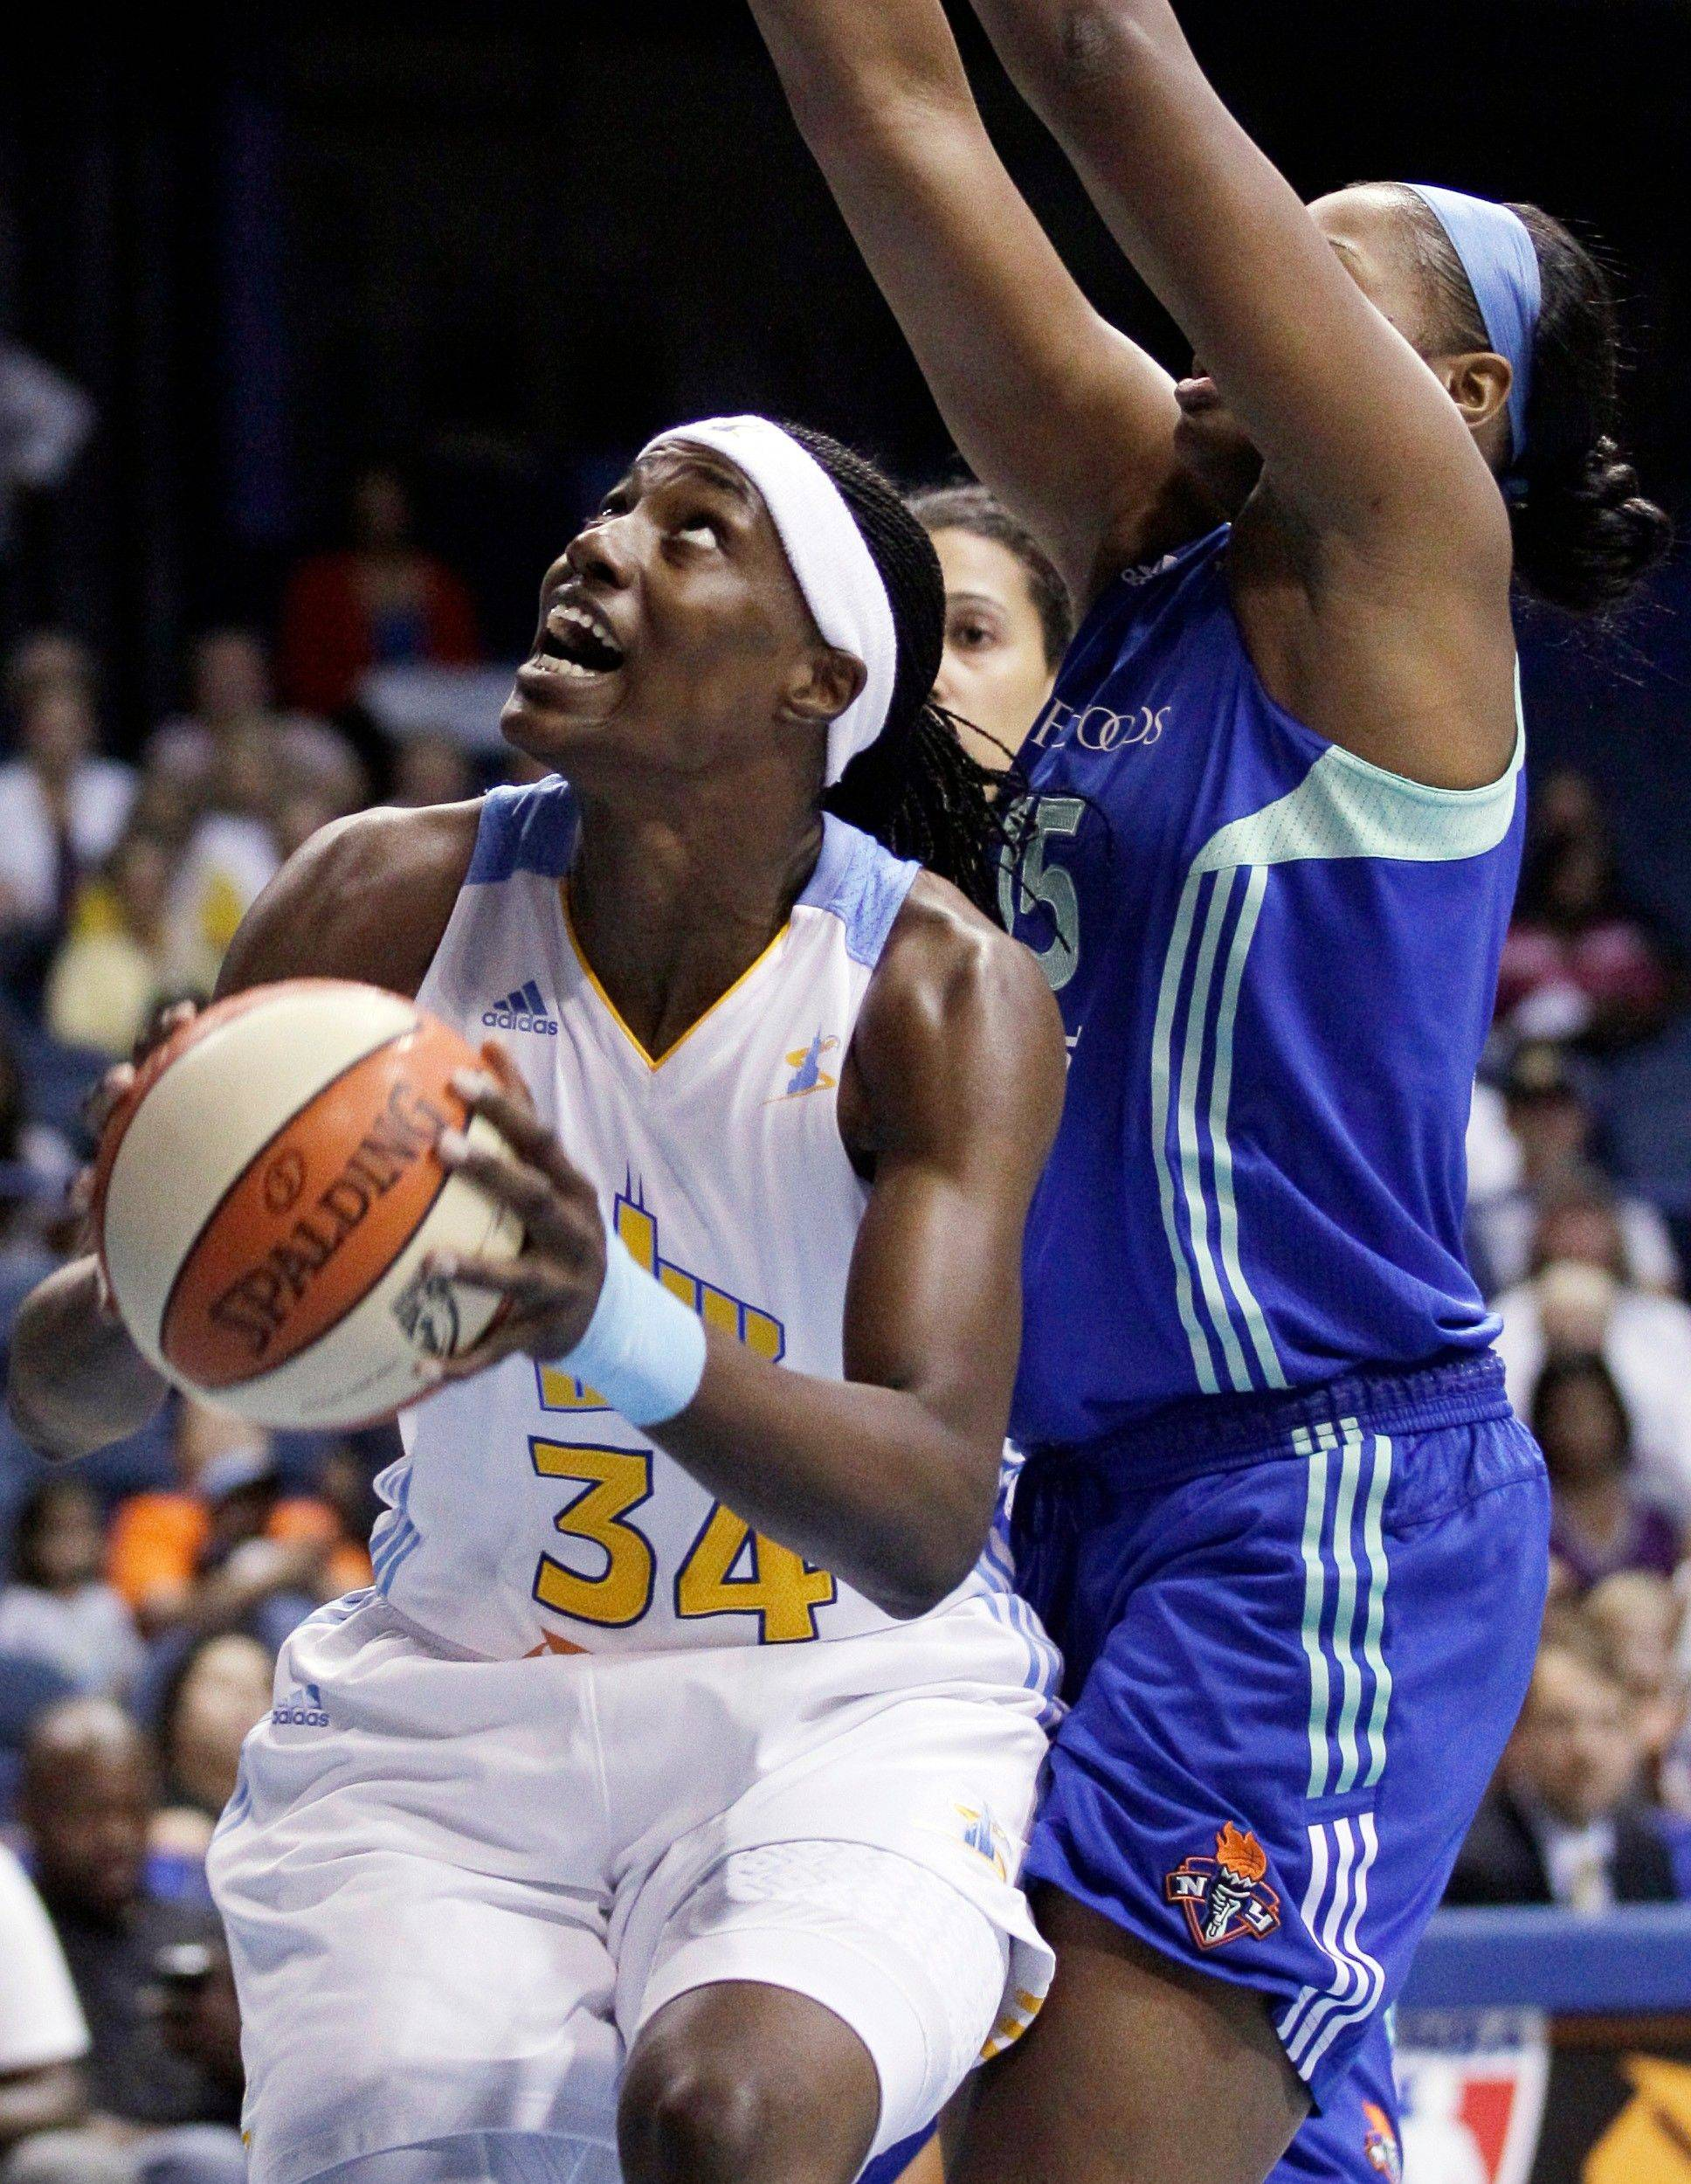 Chicago Sky's Sylvia Fowles, left, looks to the basket as New York Liberty's Kia Vaughn guards her in their WNBA basketball game on Sunday at Allstate Arena. Fowles was named Player of the Month for August for the Eastern Conference.